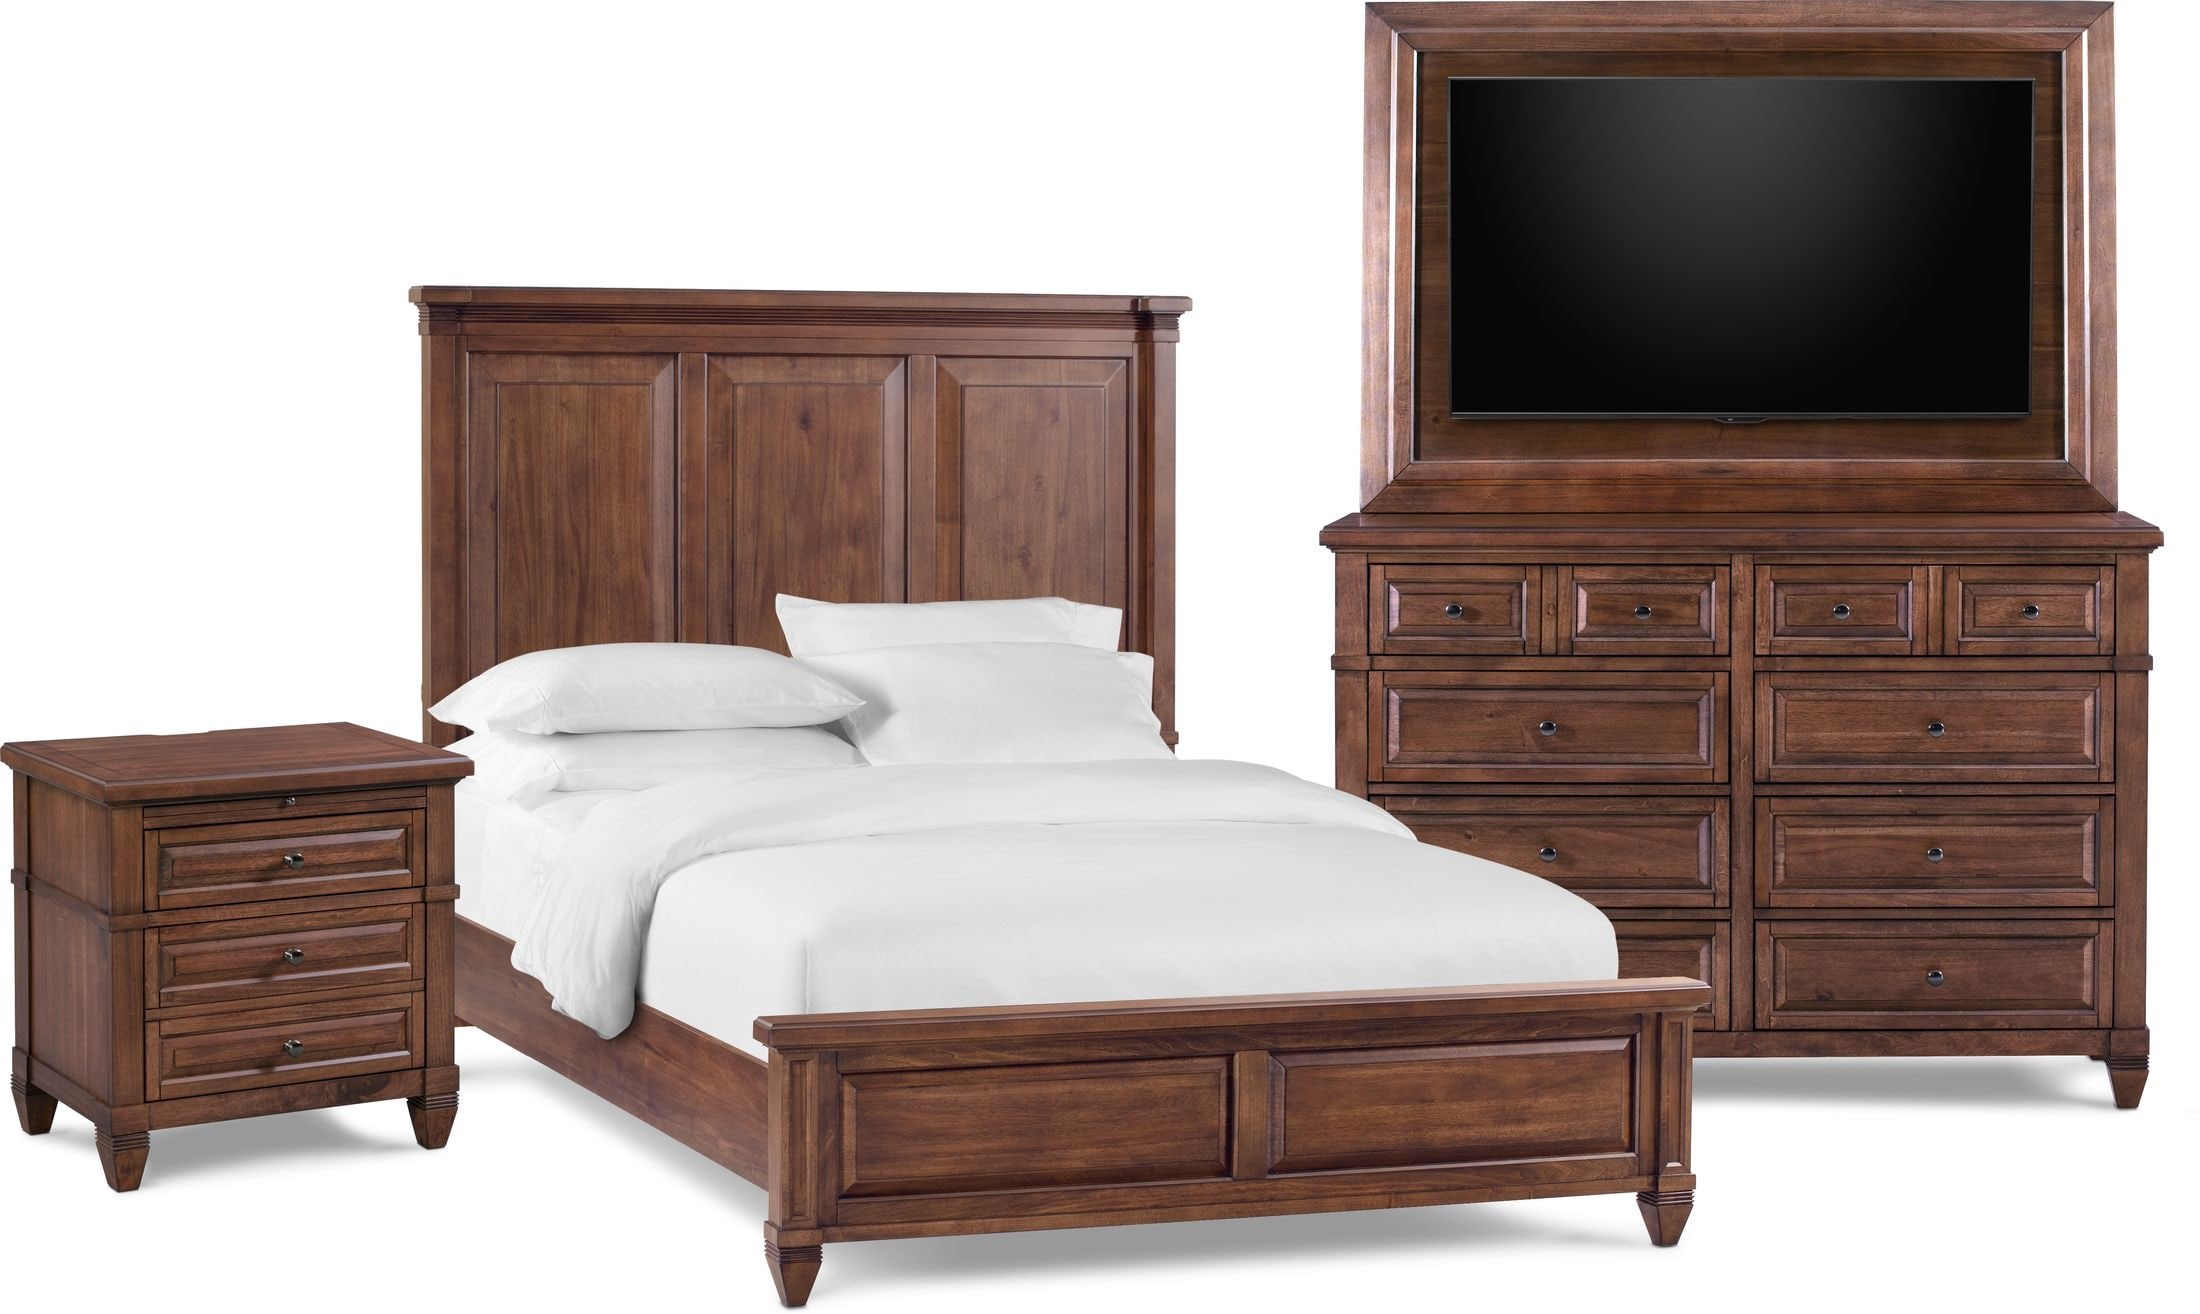 Bedroom Furniture - Rosalie 6-Piece Bedroom Set with Nightstand, Dresser and TV Mount